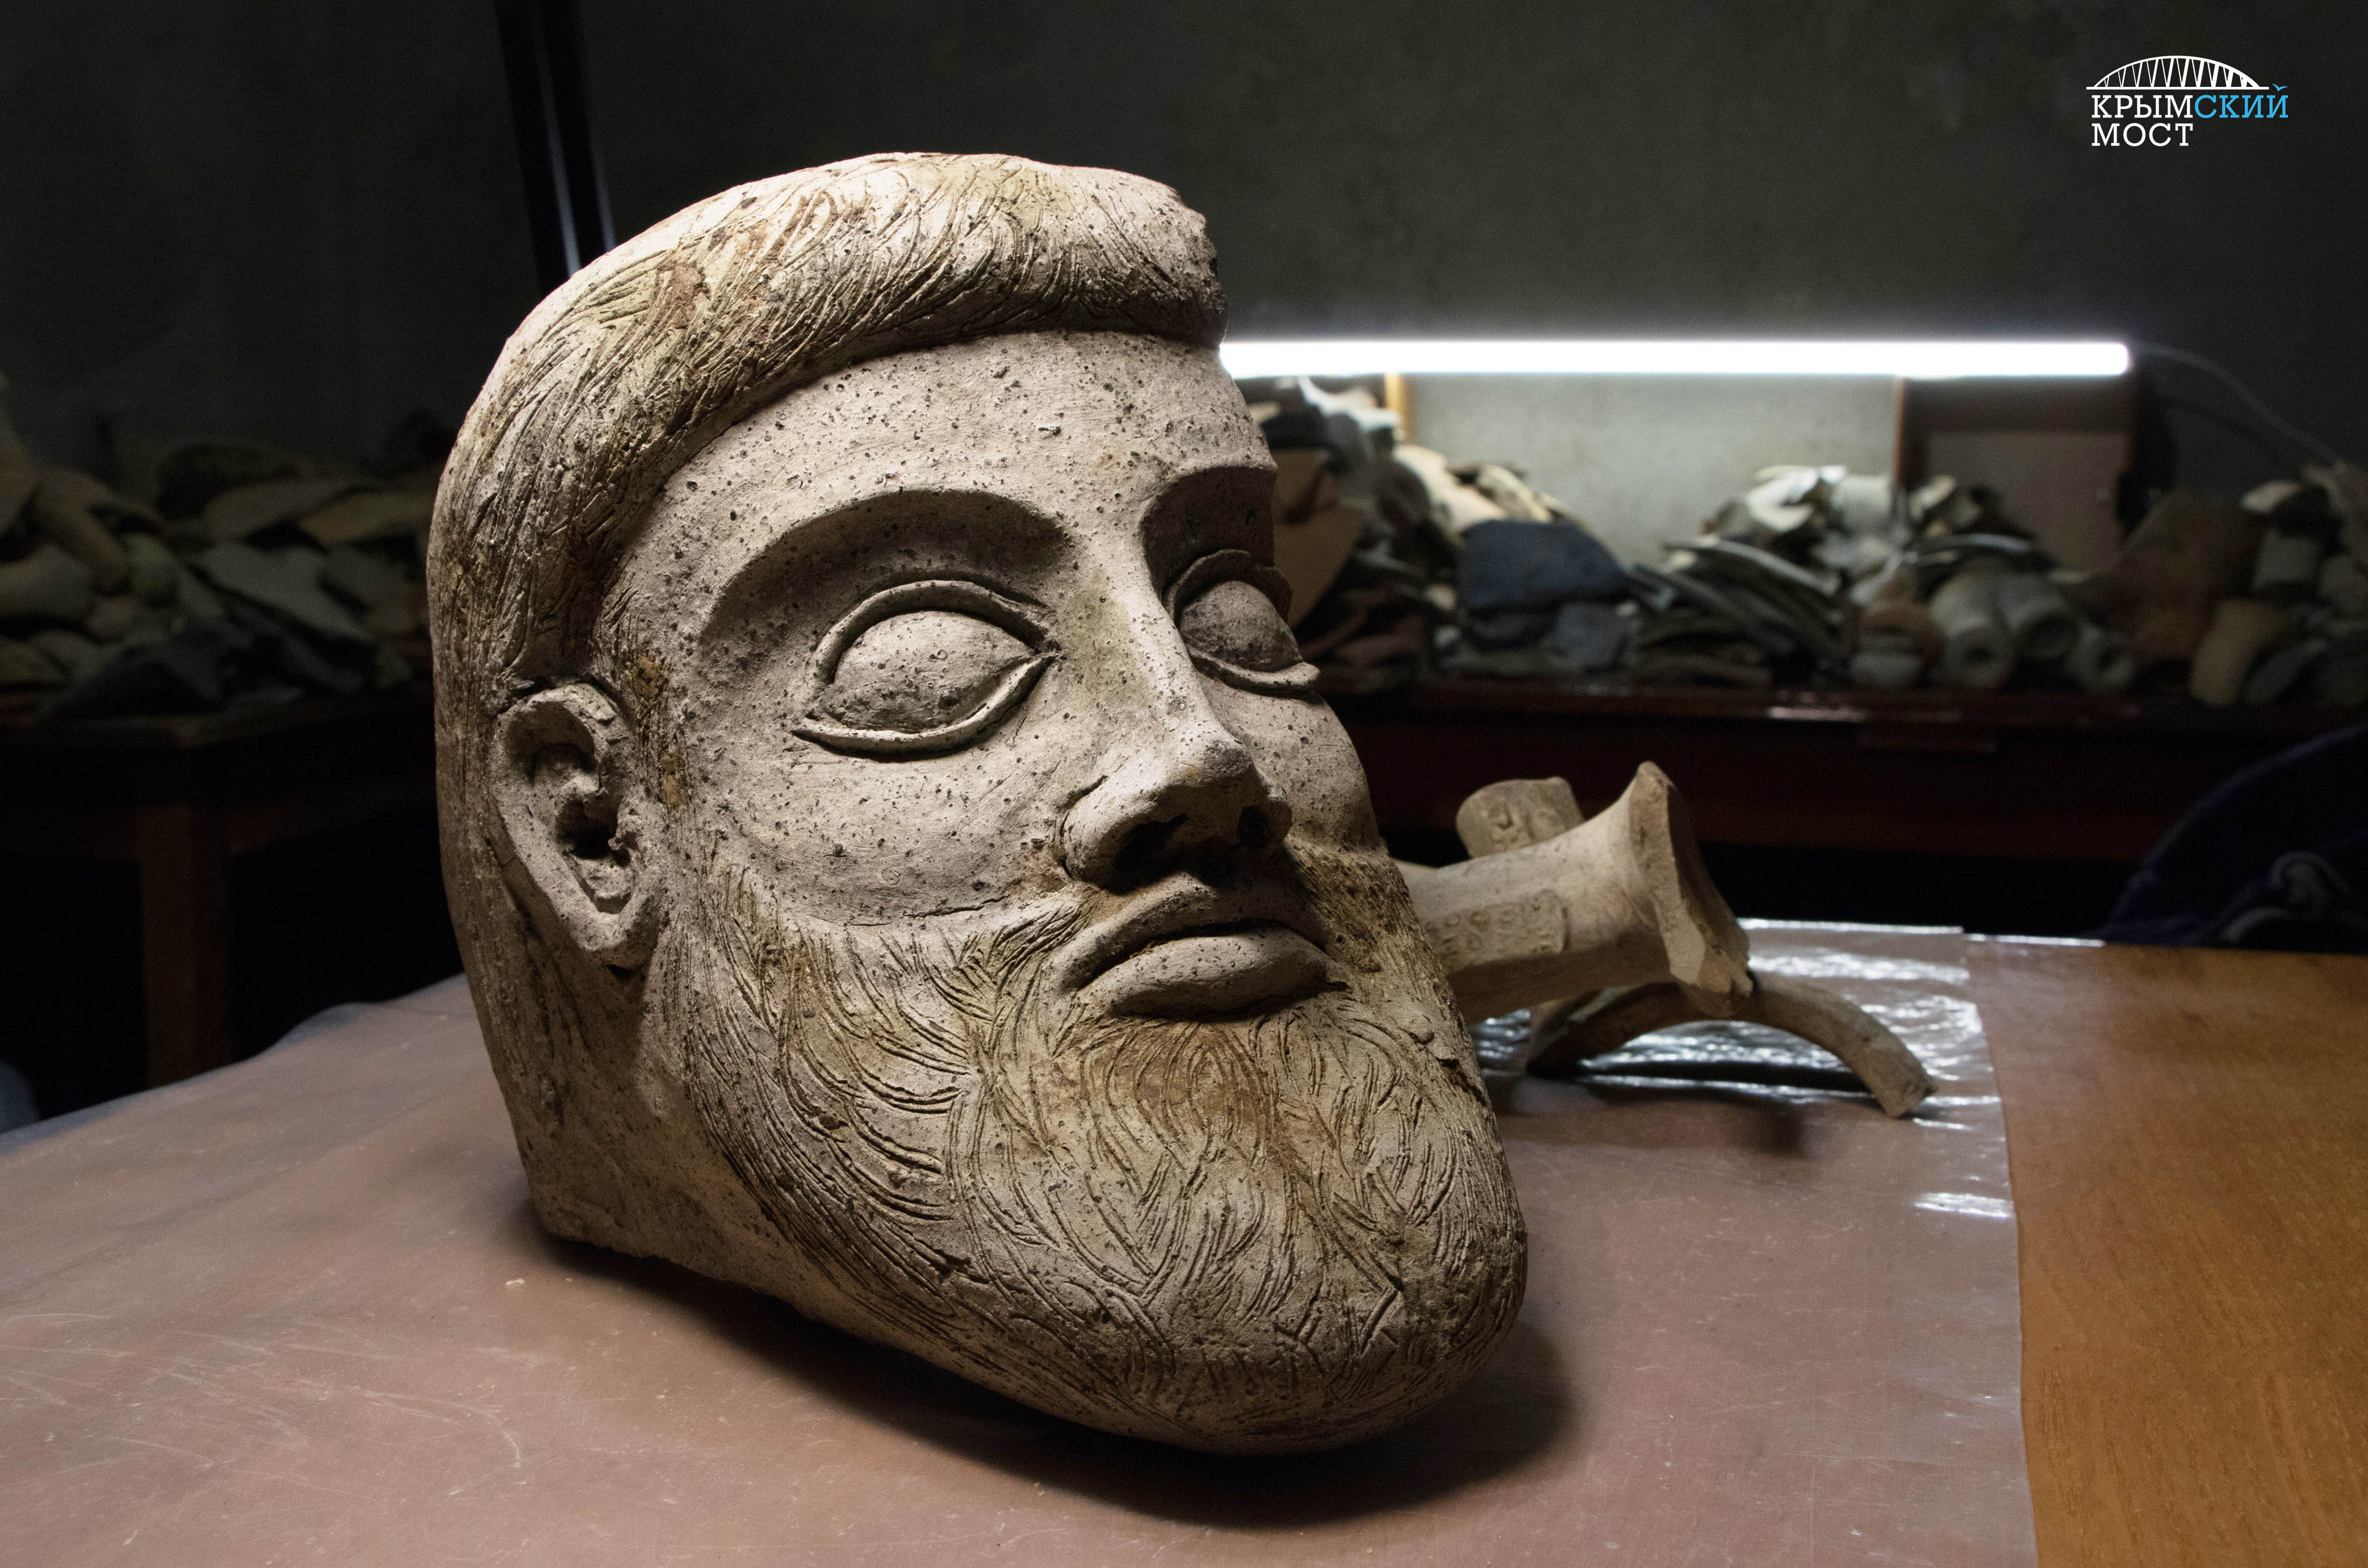 Еhe fragment is believed to have been part of a bigger sculpture.